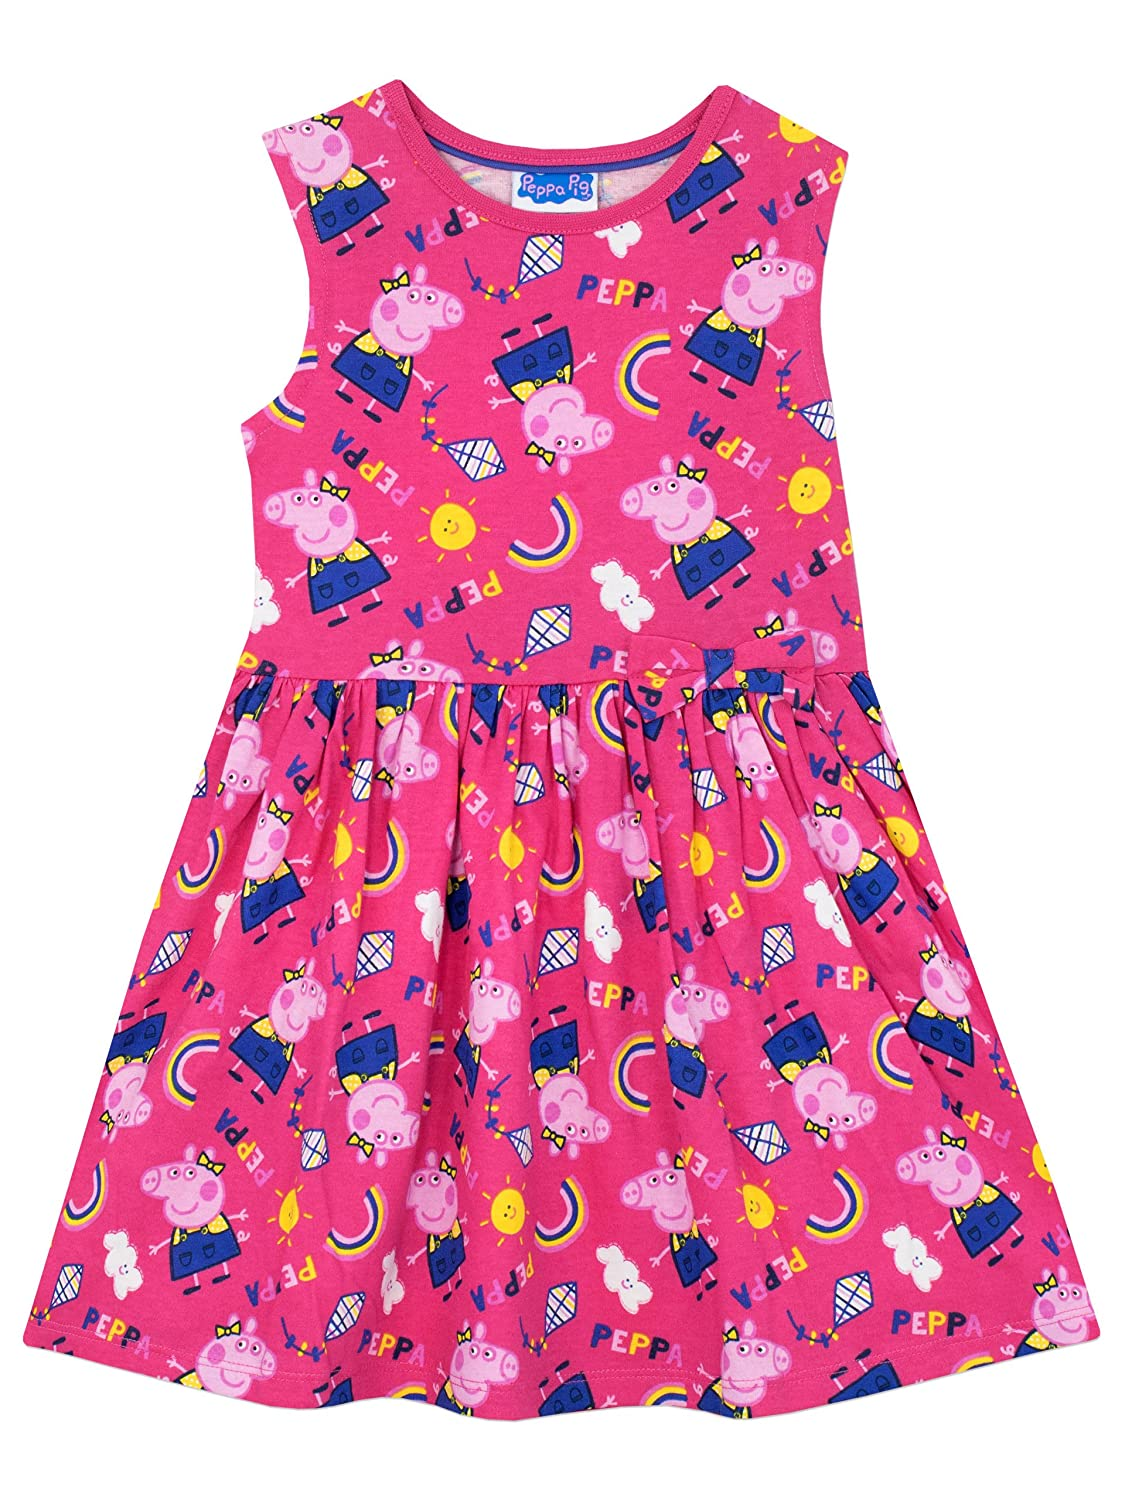 Peppa Pig Girls Dress Ages 18 Months To 8 Years